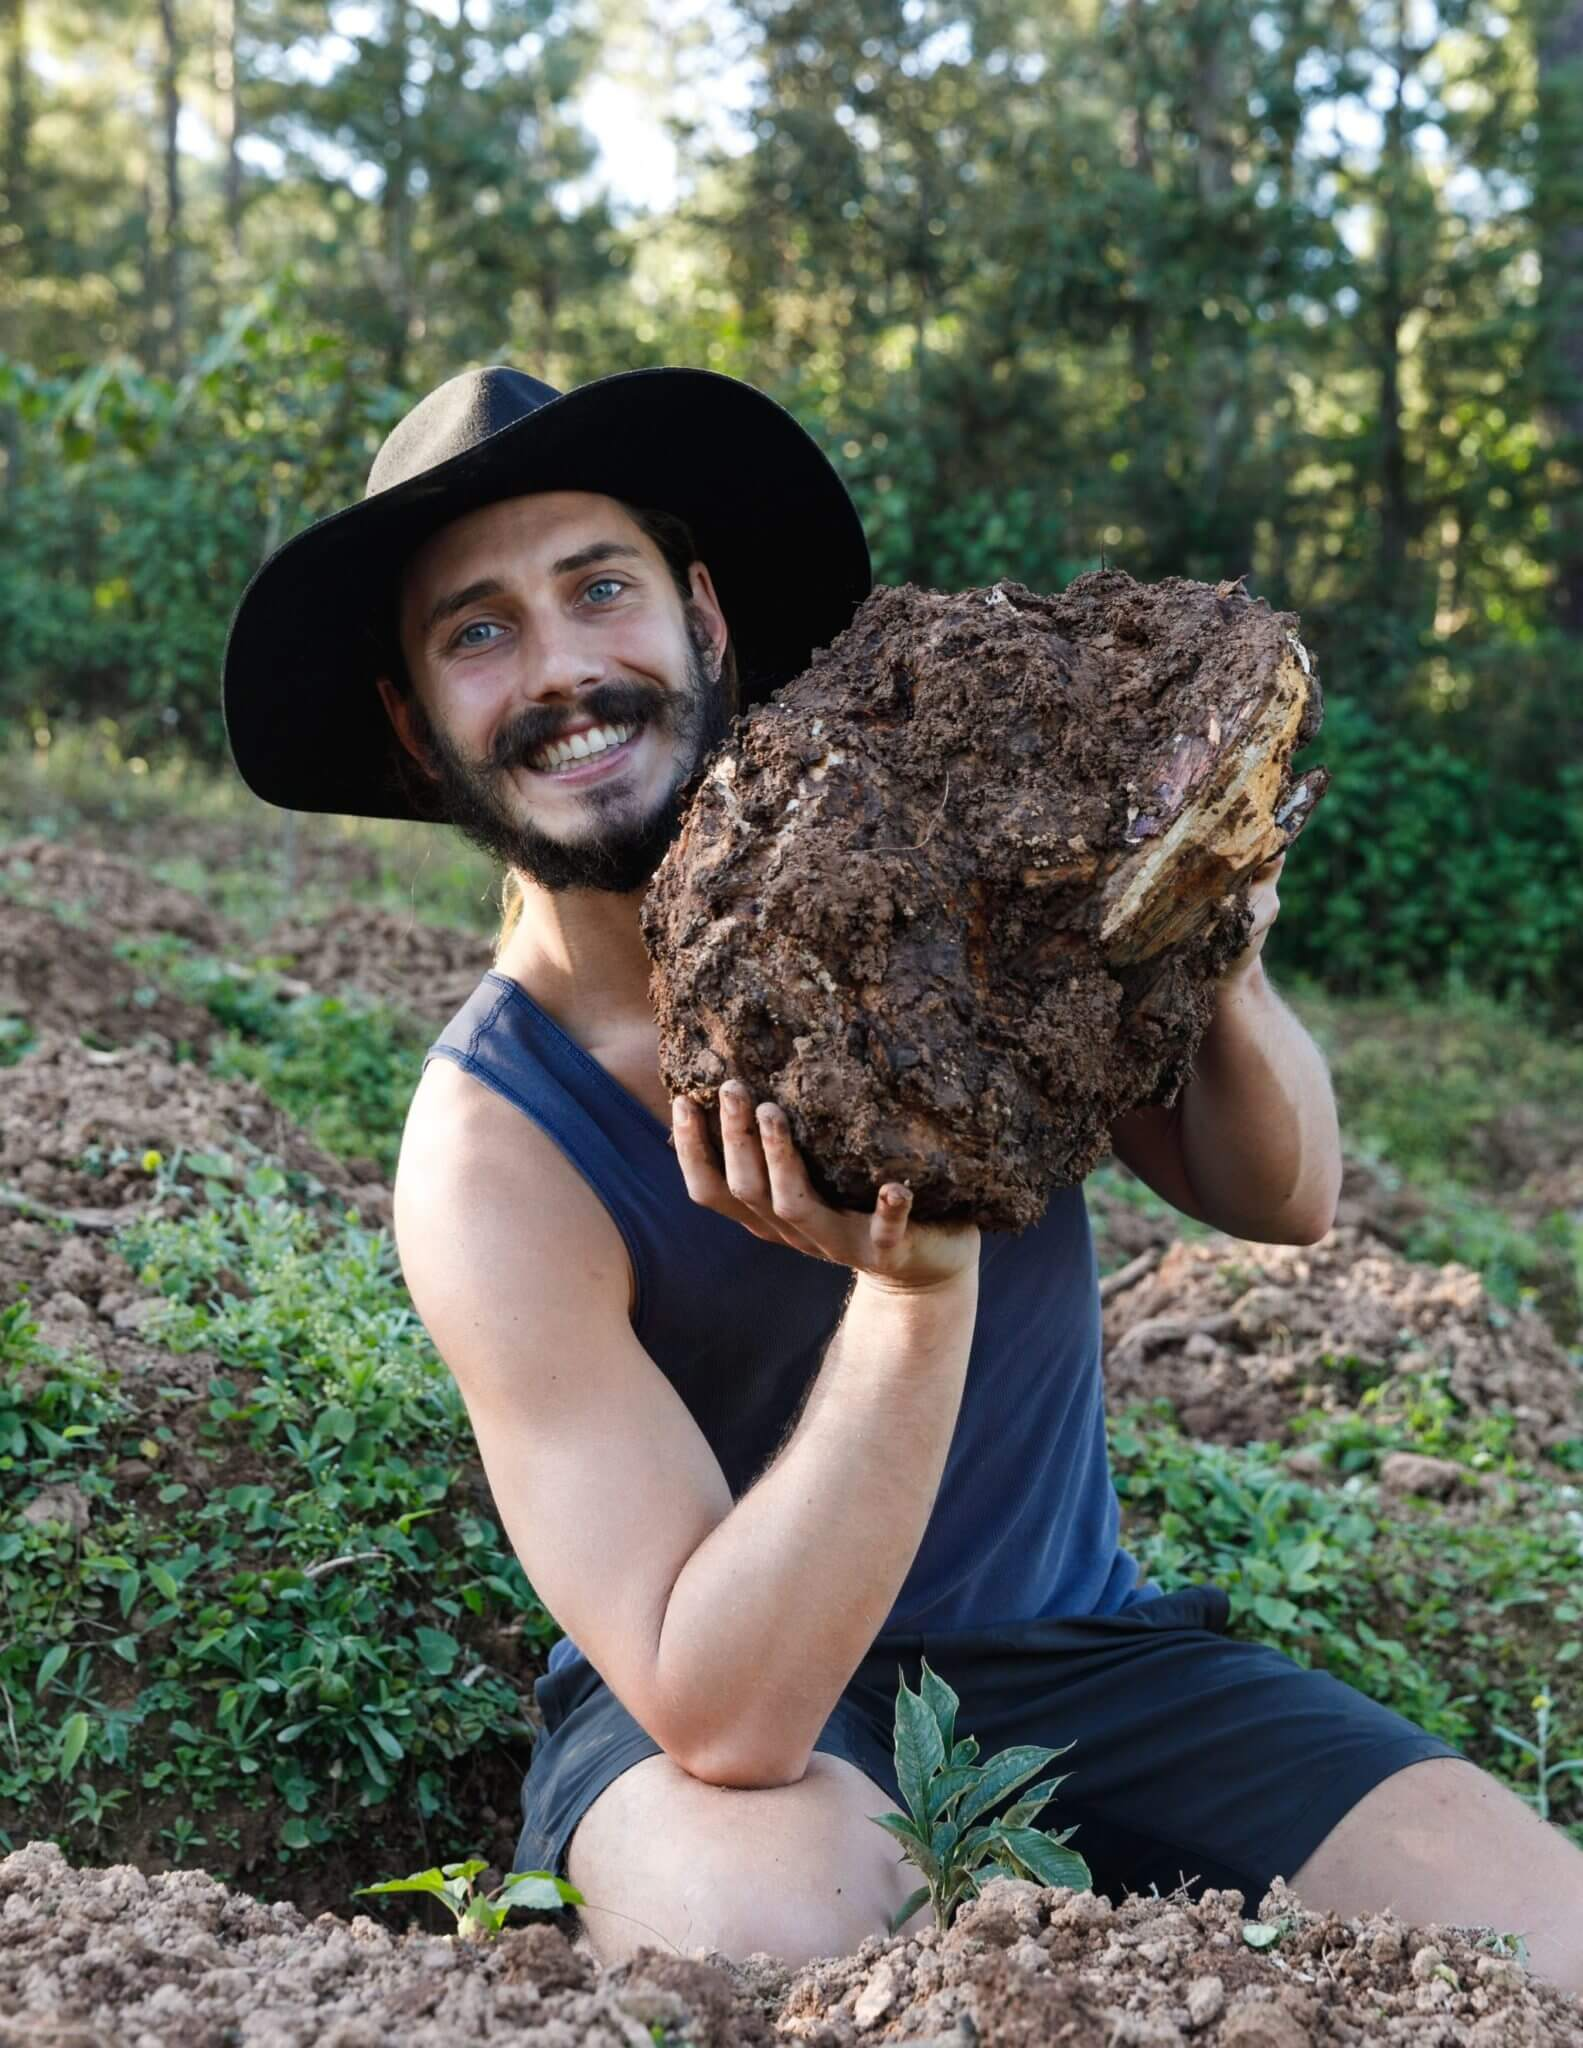 Mason Taylor harvesting Chaga Mushrooms in a forrest